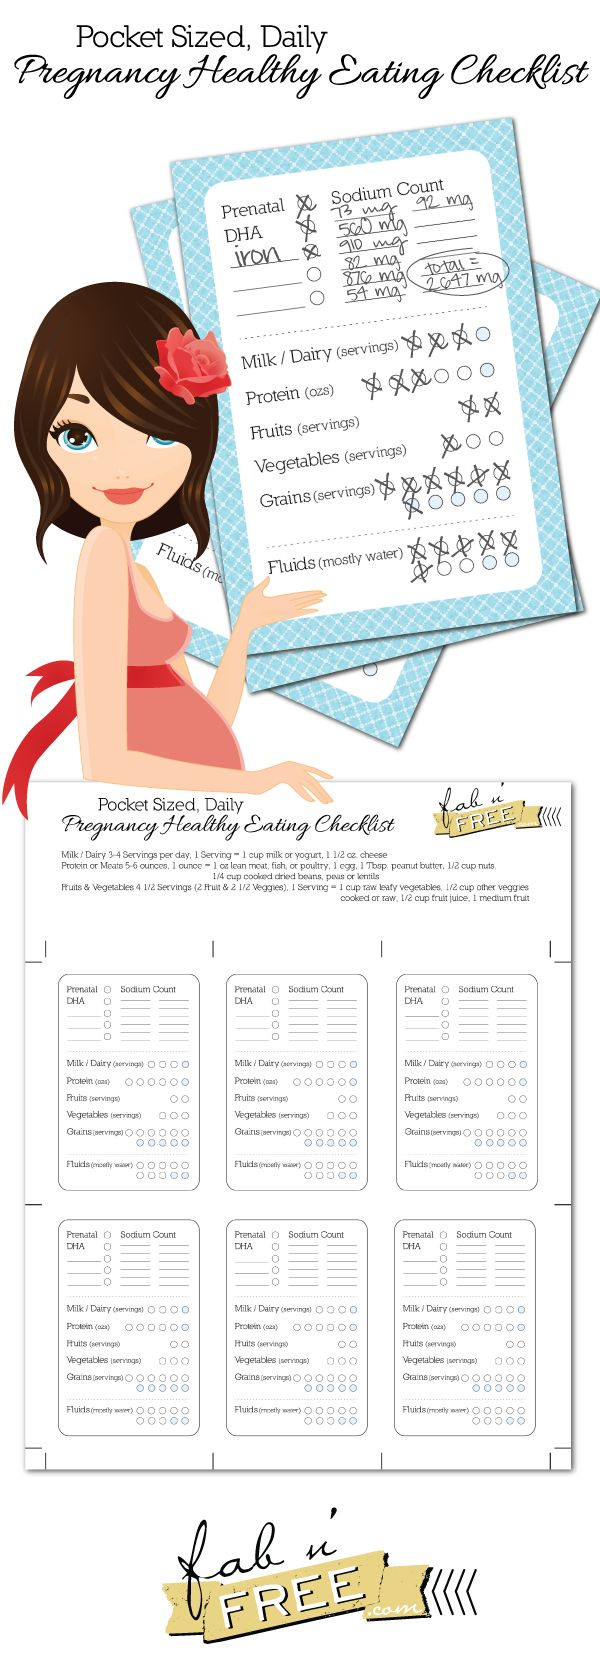 Free Pocket Sized Daily Quot Pregnancy Healthy Eating